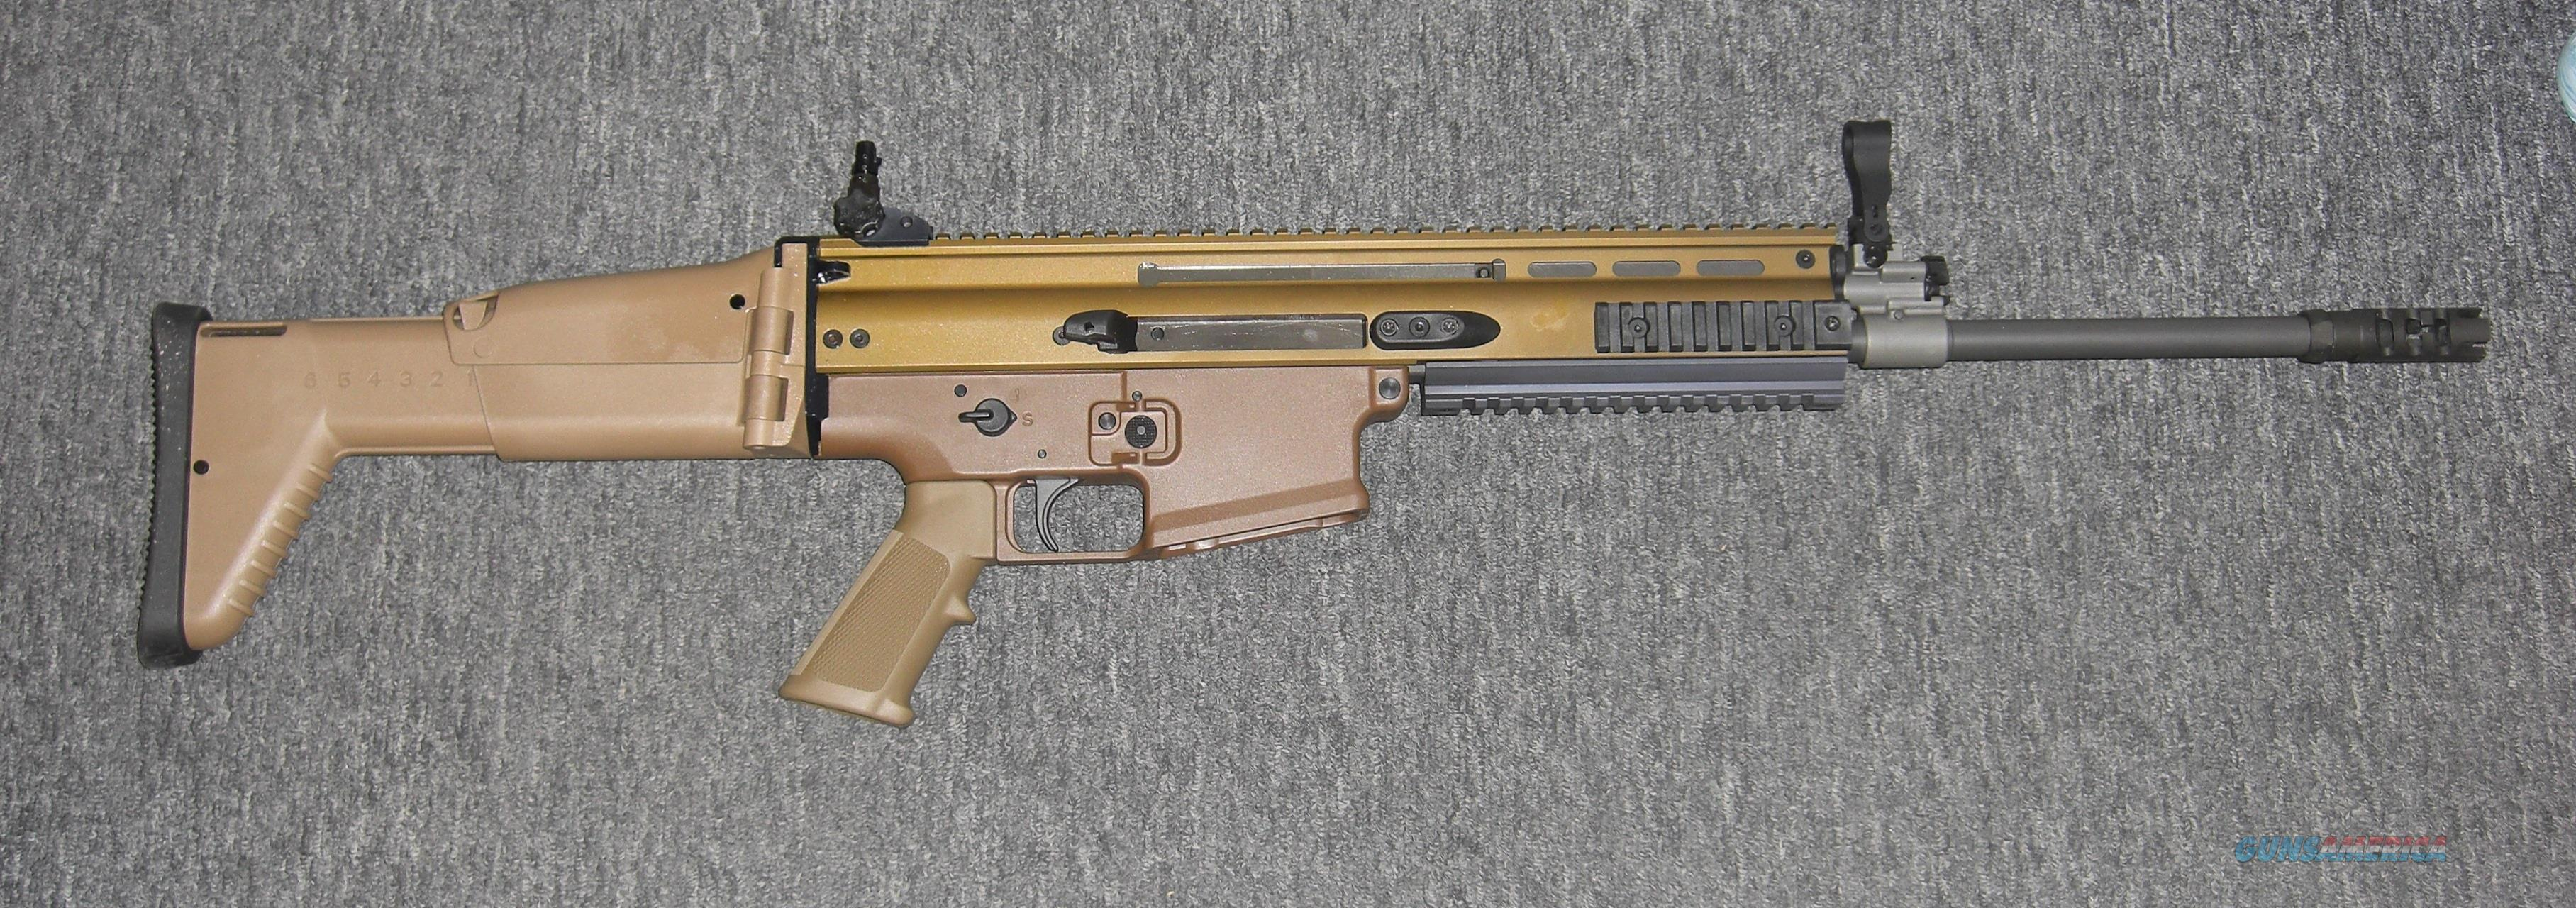 Scar 17s  Flat Dark Earth (.308)  Guns > Rifles > FNH - Fabrique Nationale (FN) Rifles > Semi-auto > Other